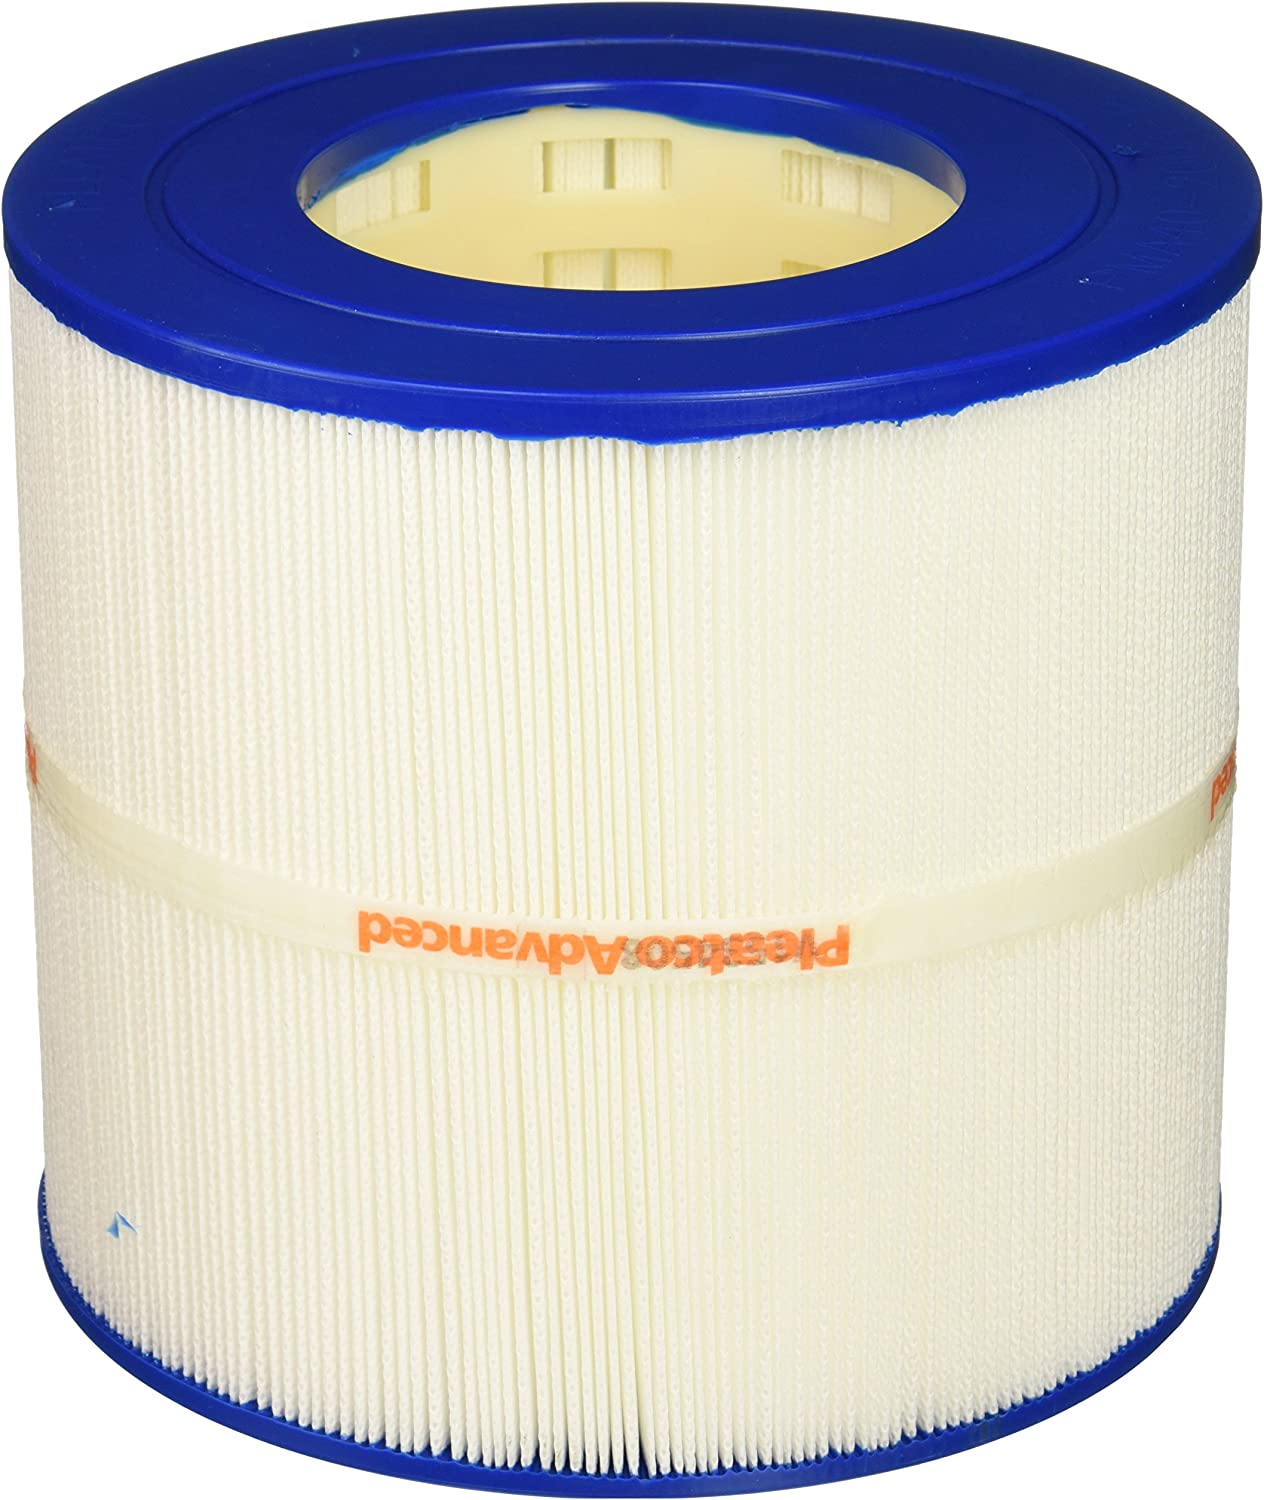 Pleatco PMA40-2003-R Replacement Cartridge for Master Spas, Down East Round Outer, Eco-Pur, 1 Cartridge